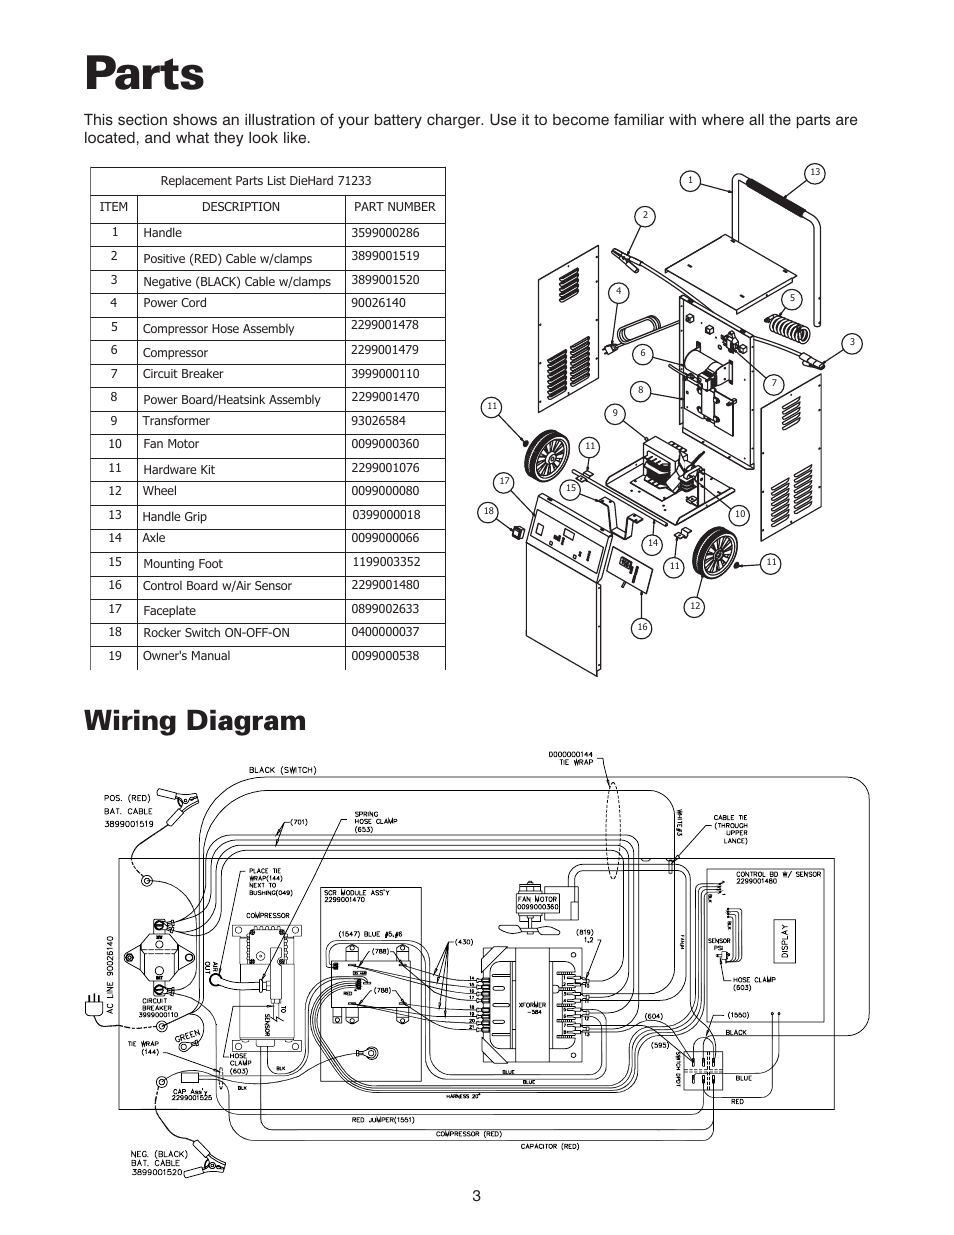 hight resolution of wiring diagram for diehard battery charger circuit connection xp2260 schumacher battery charger wiring diagram parts wiring